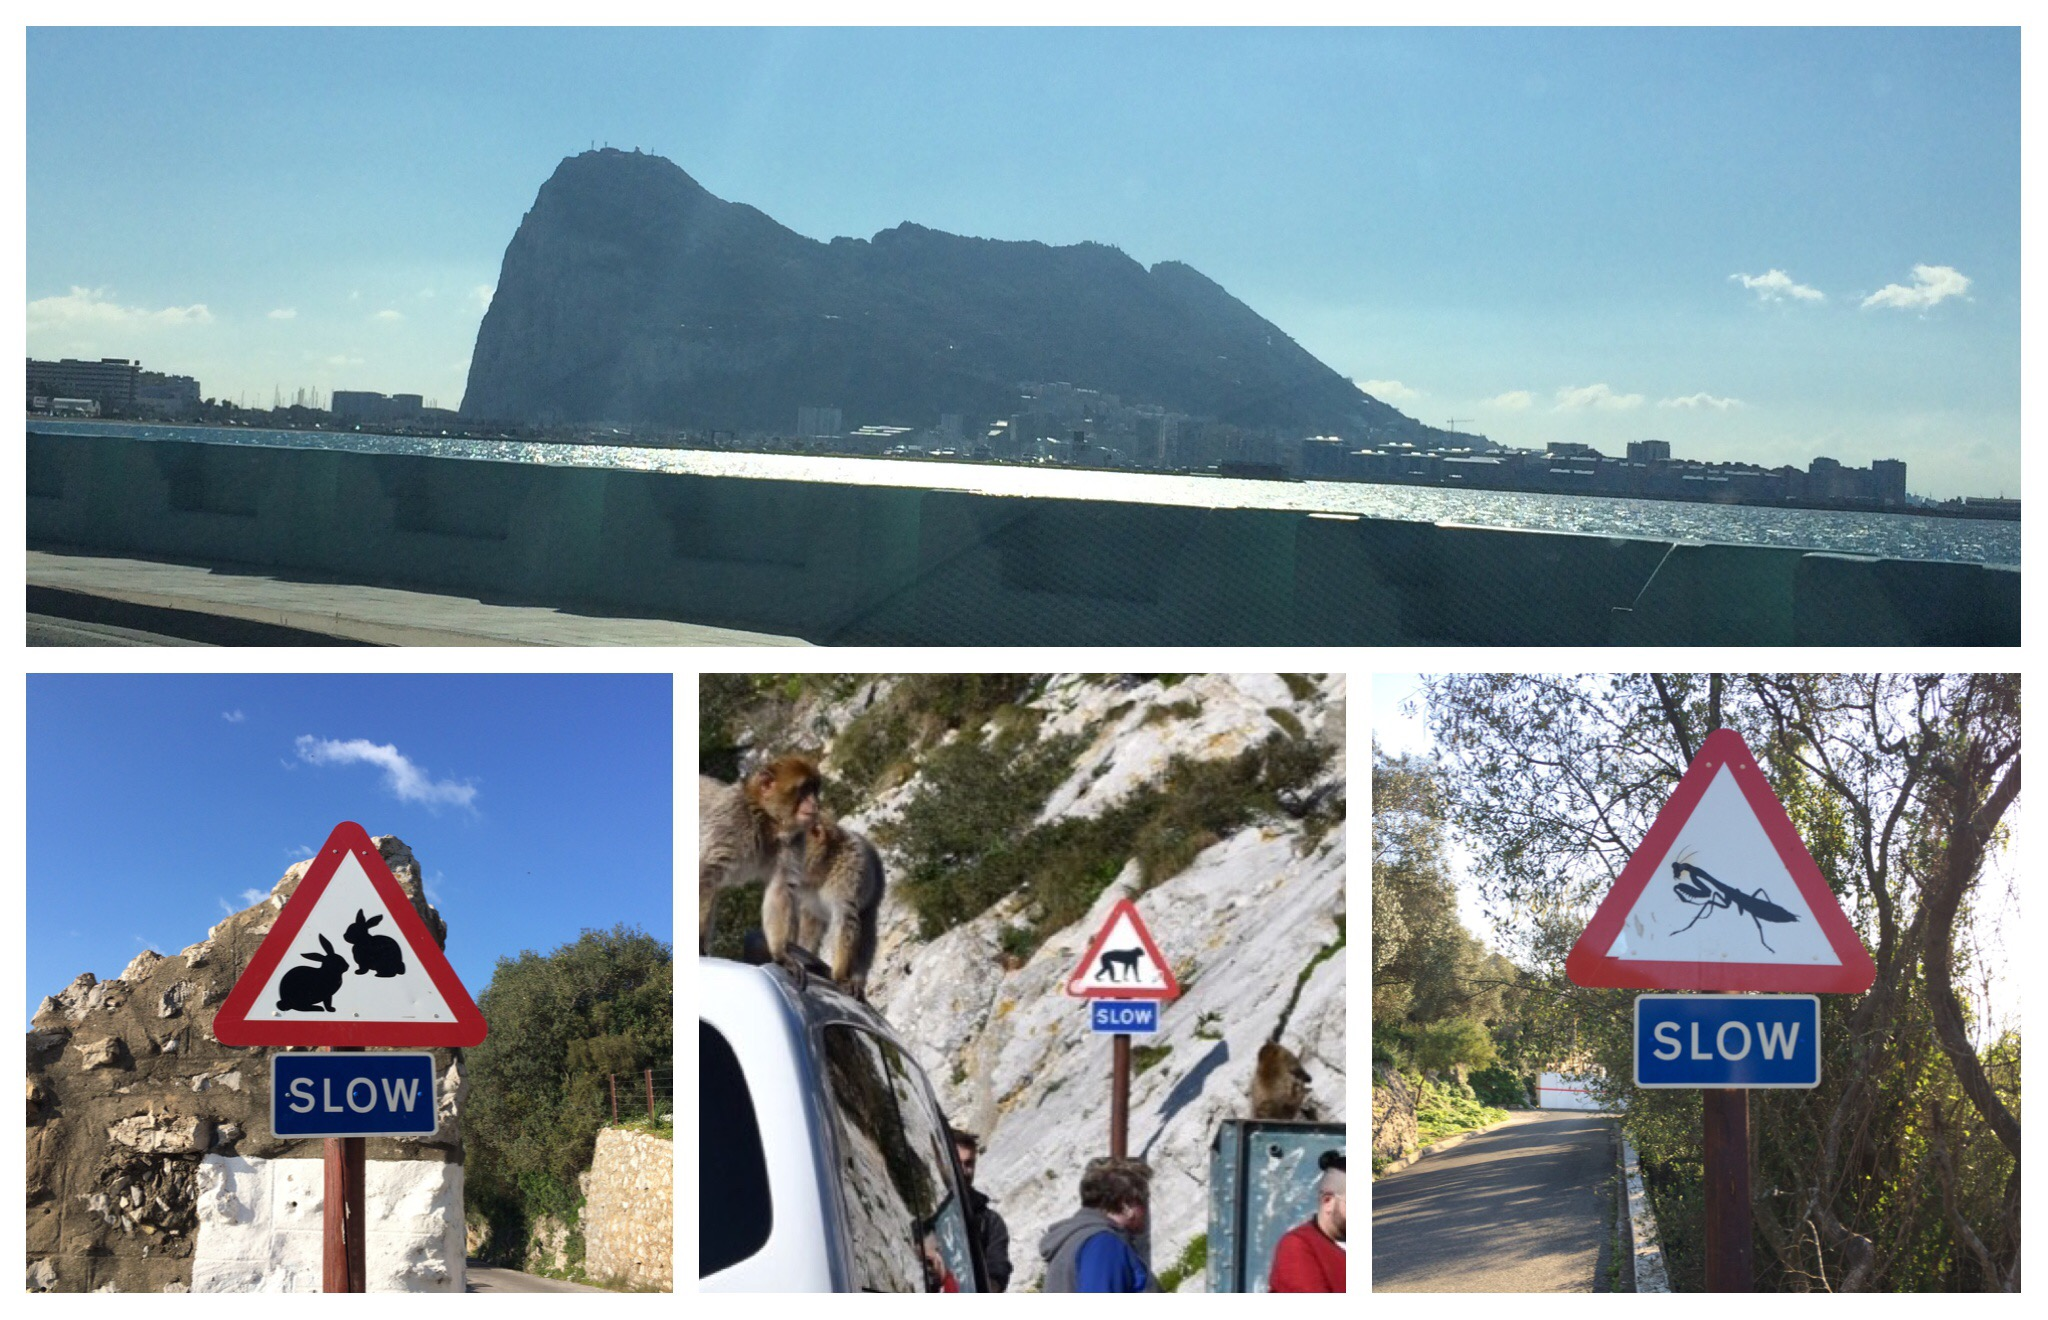 Gibraltar - unusual road signs